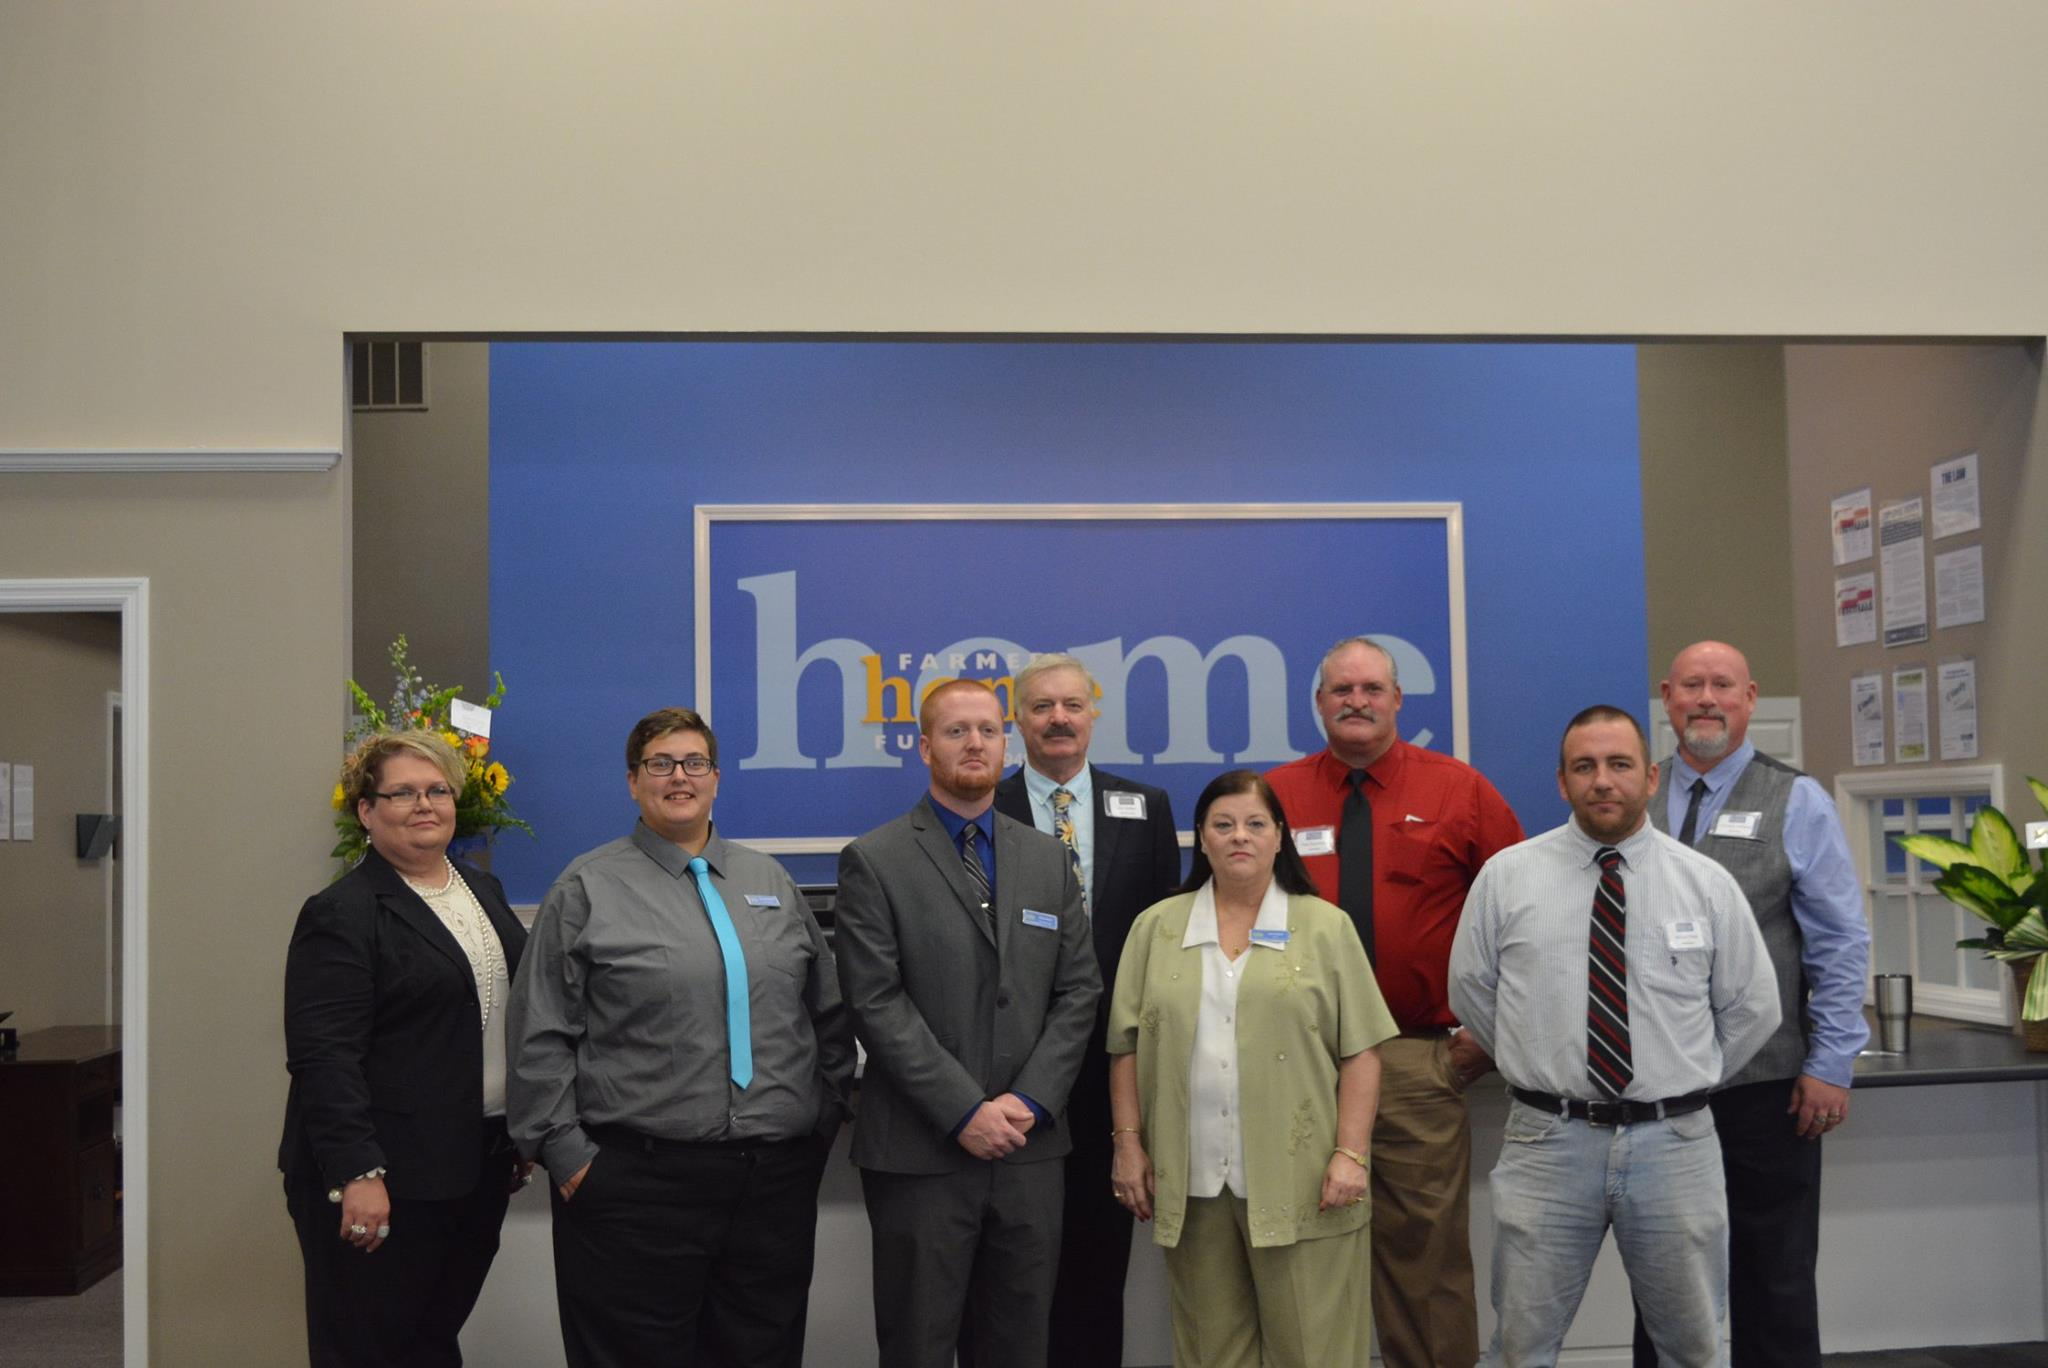 Farmers Home Furniture Held Grand Opening Friday August 10